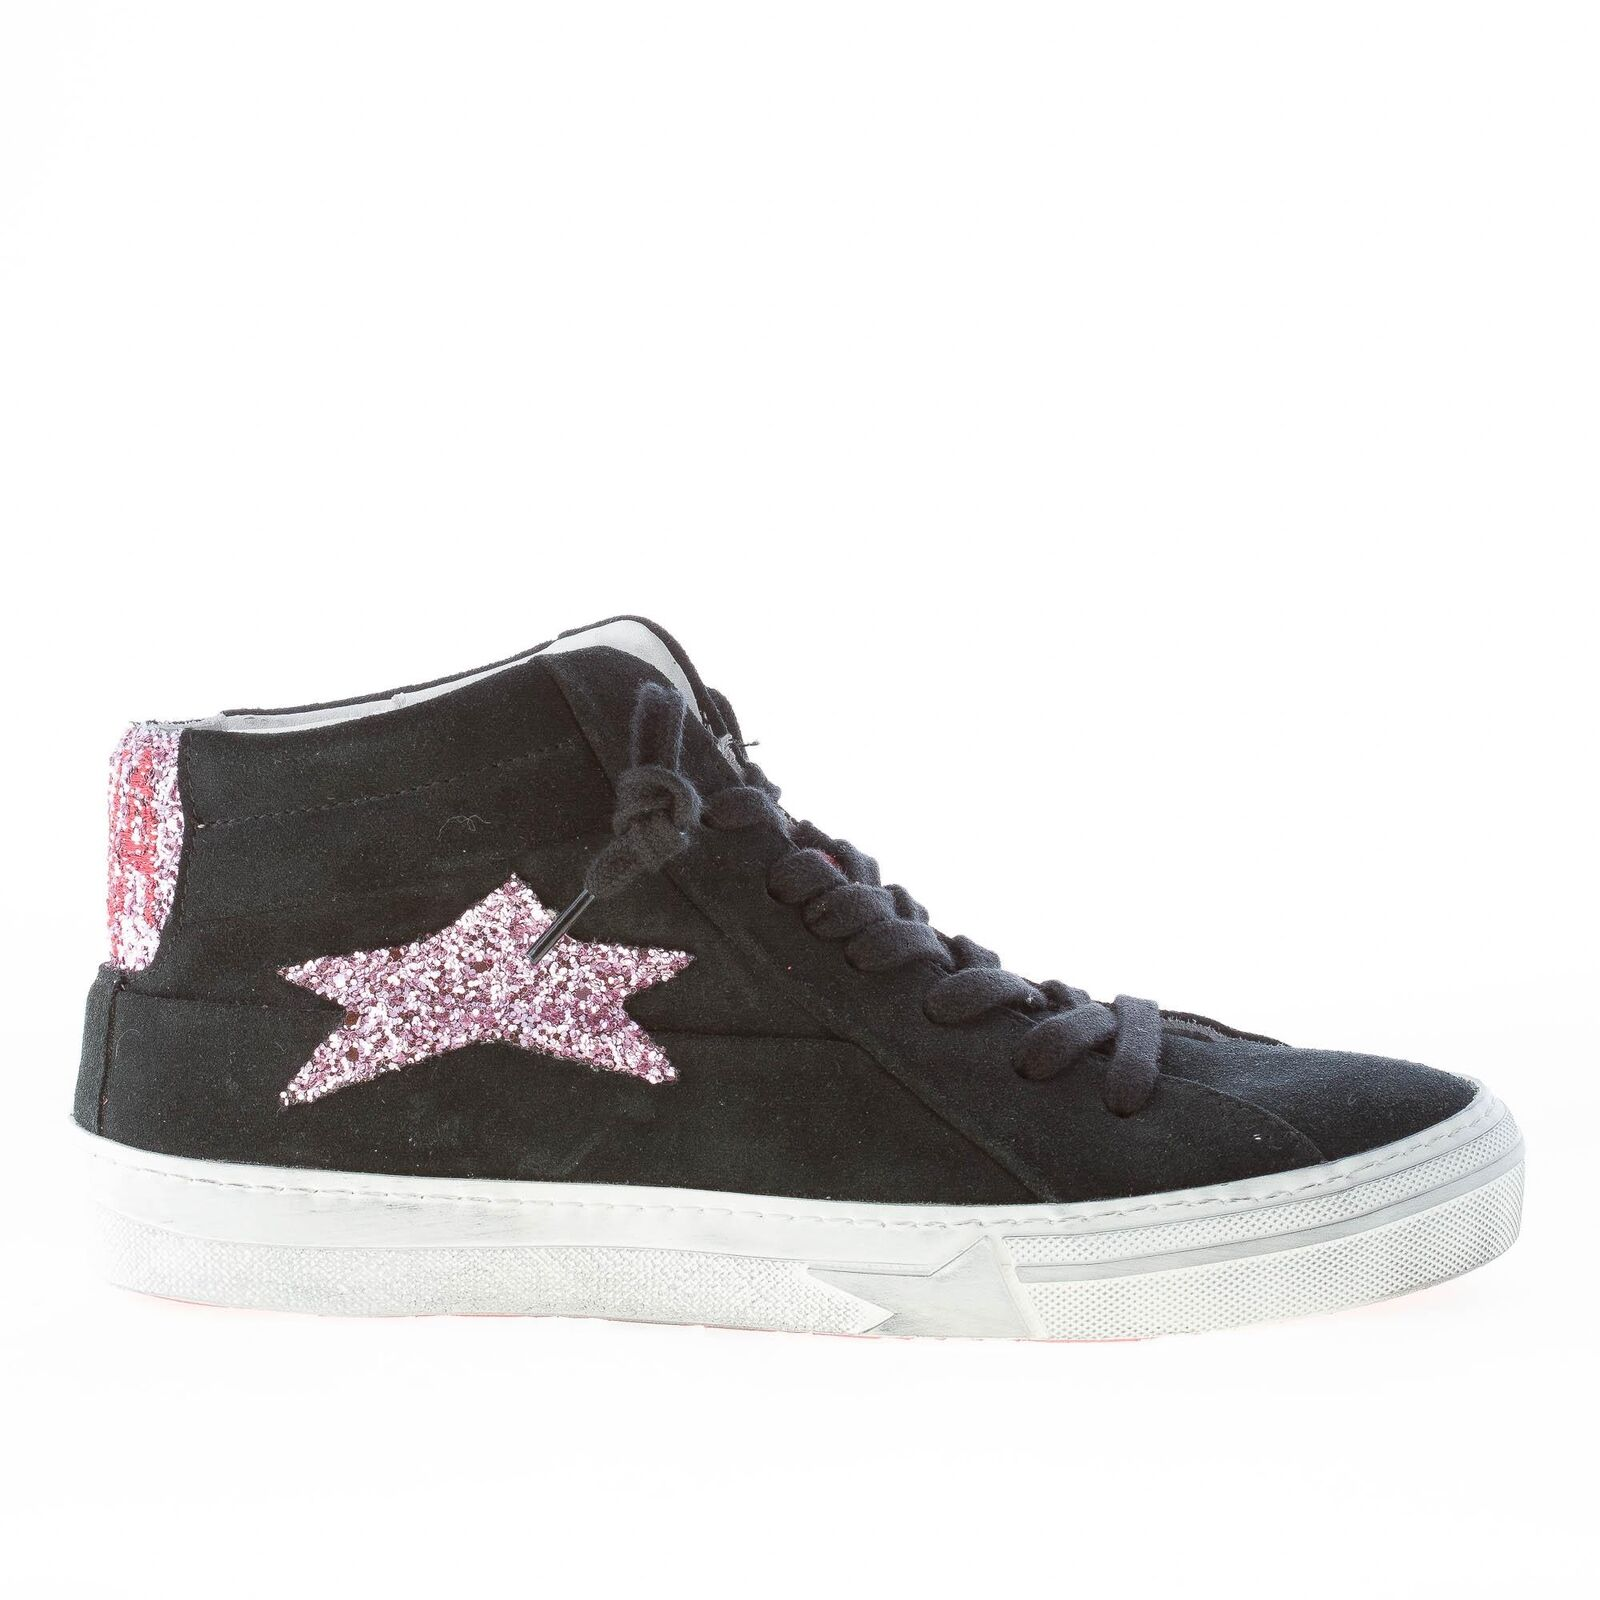 ISHIKAWA shoes femme Black suede Marti high sneaker with pink glitter star